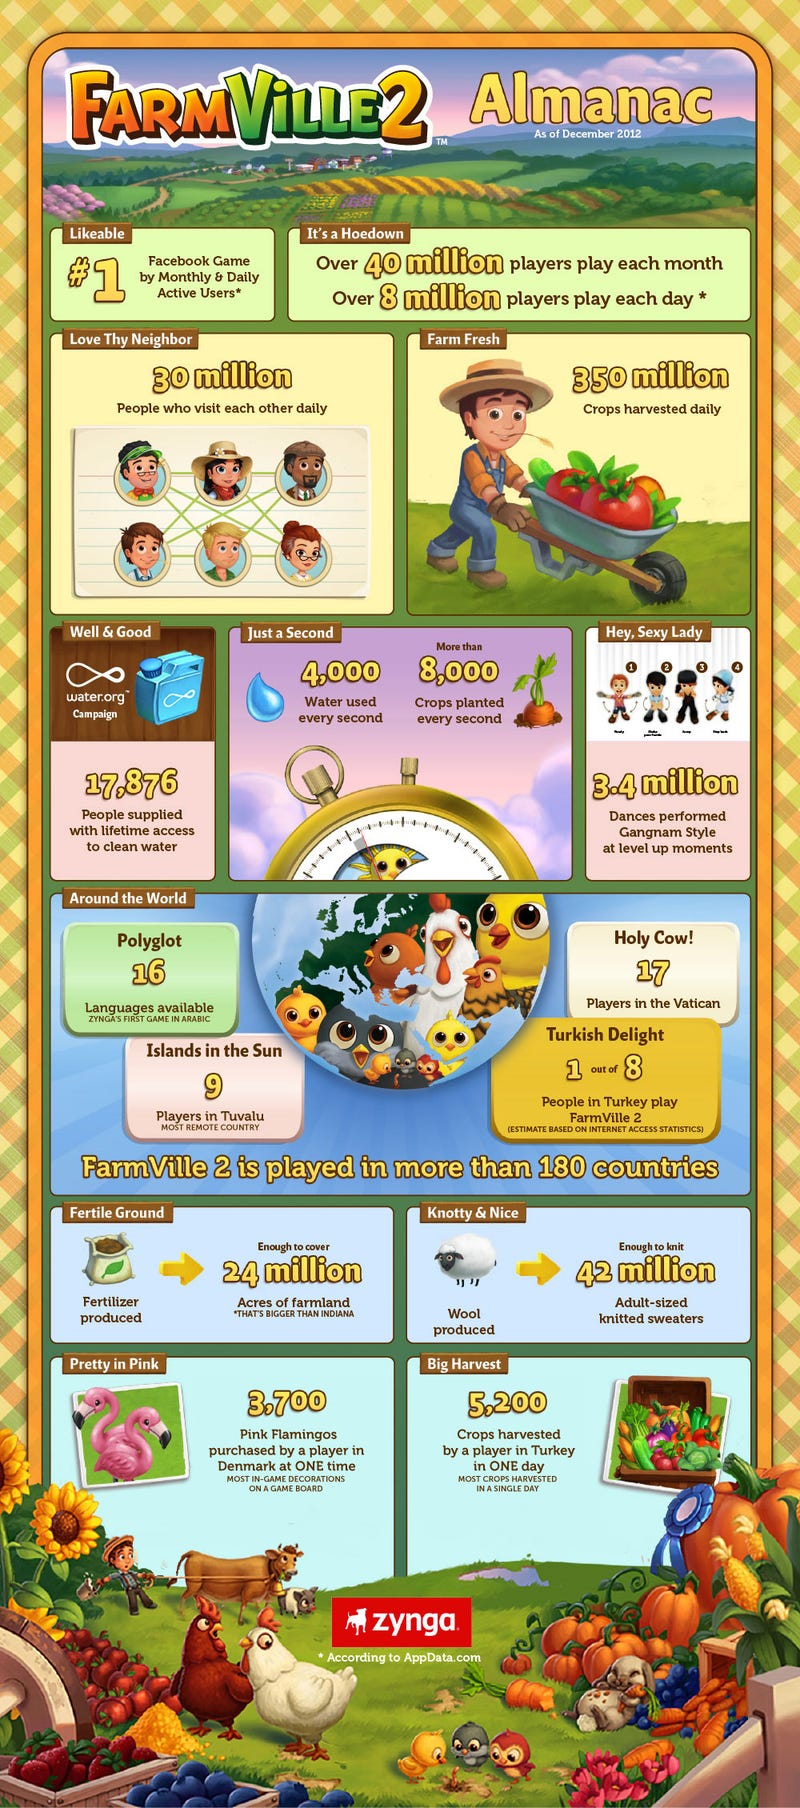 17 Vatican Virtual Farmers and Other Entertaining FarmVille 2 Stats